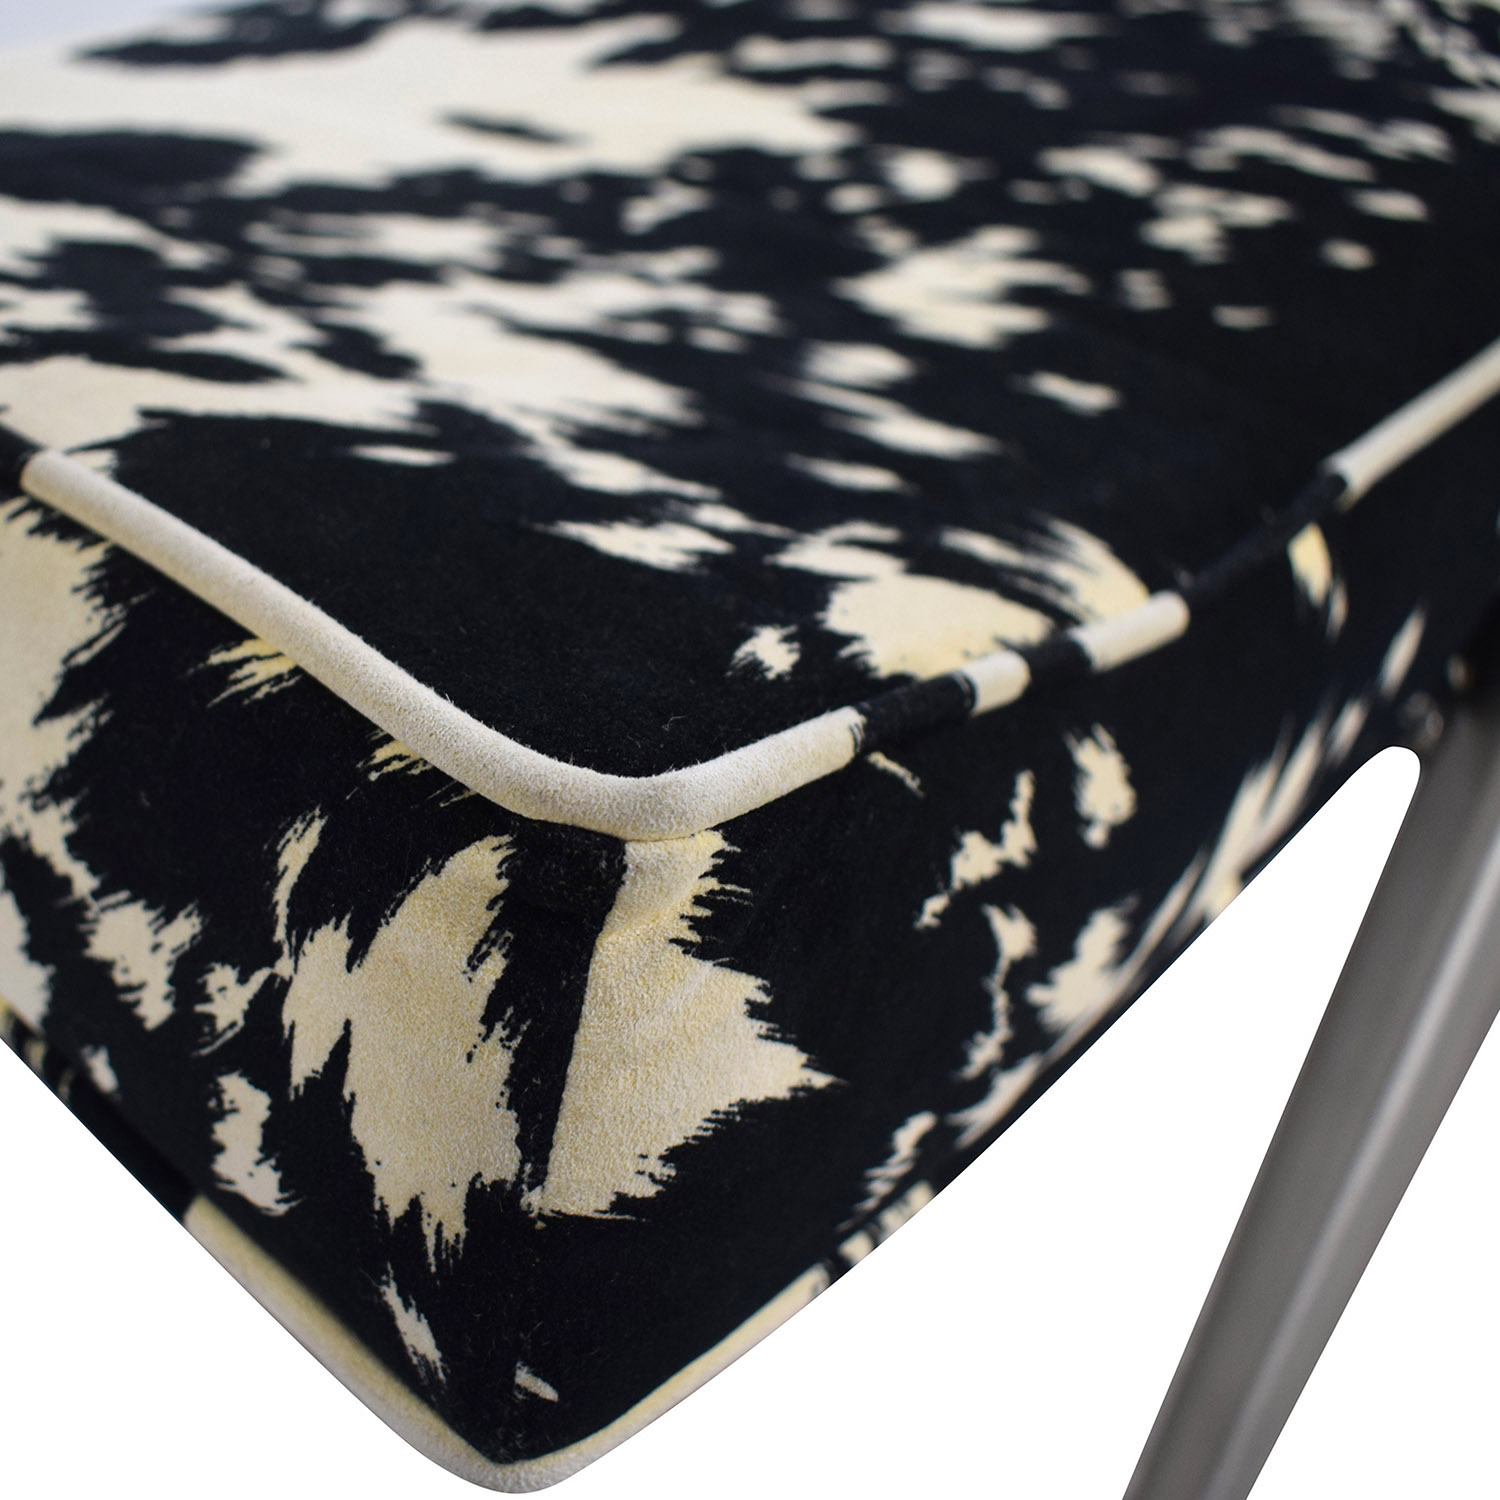 buy Black and White Upholstered Bench